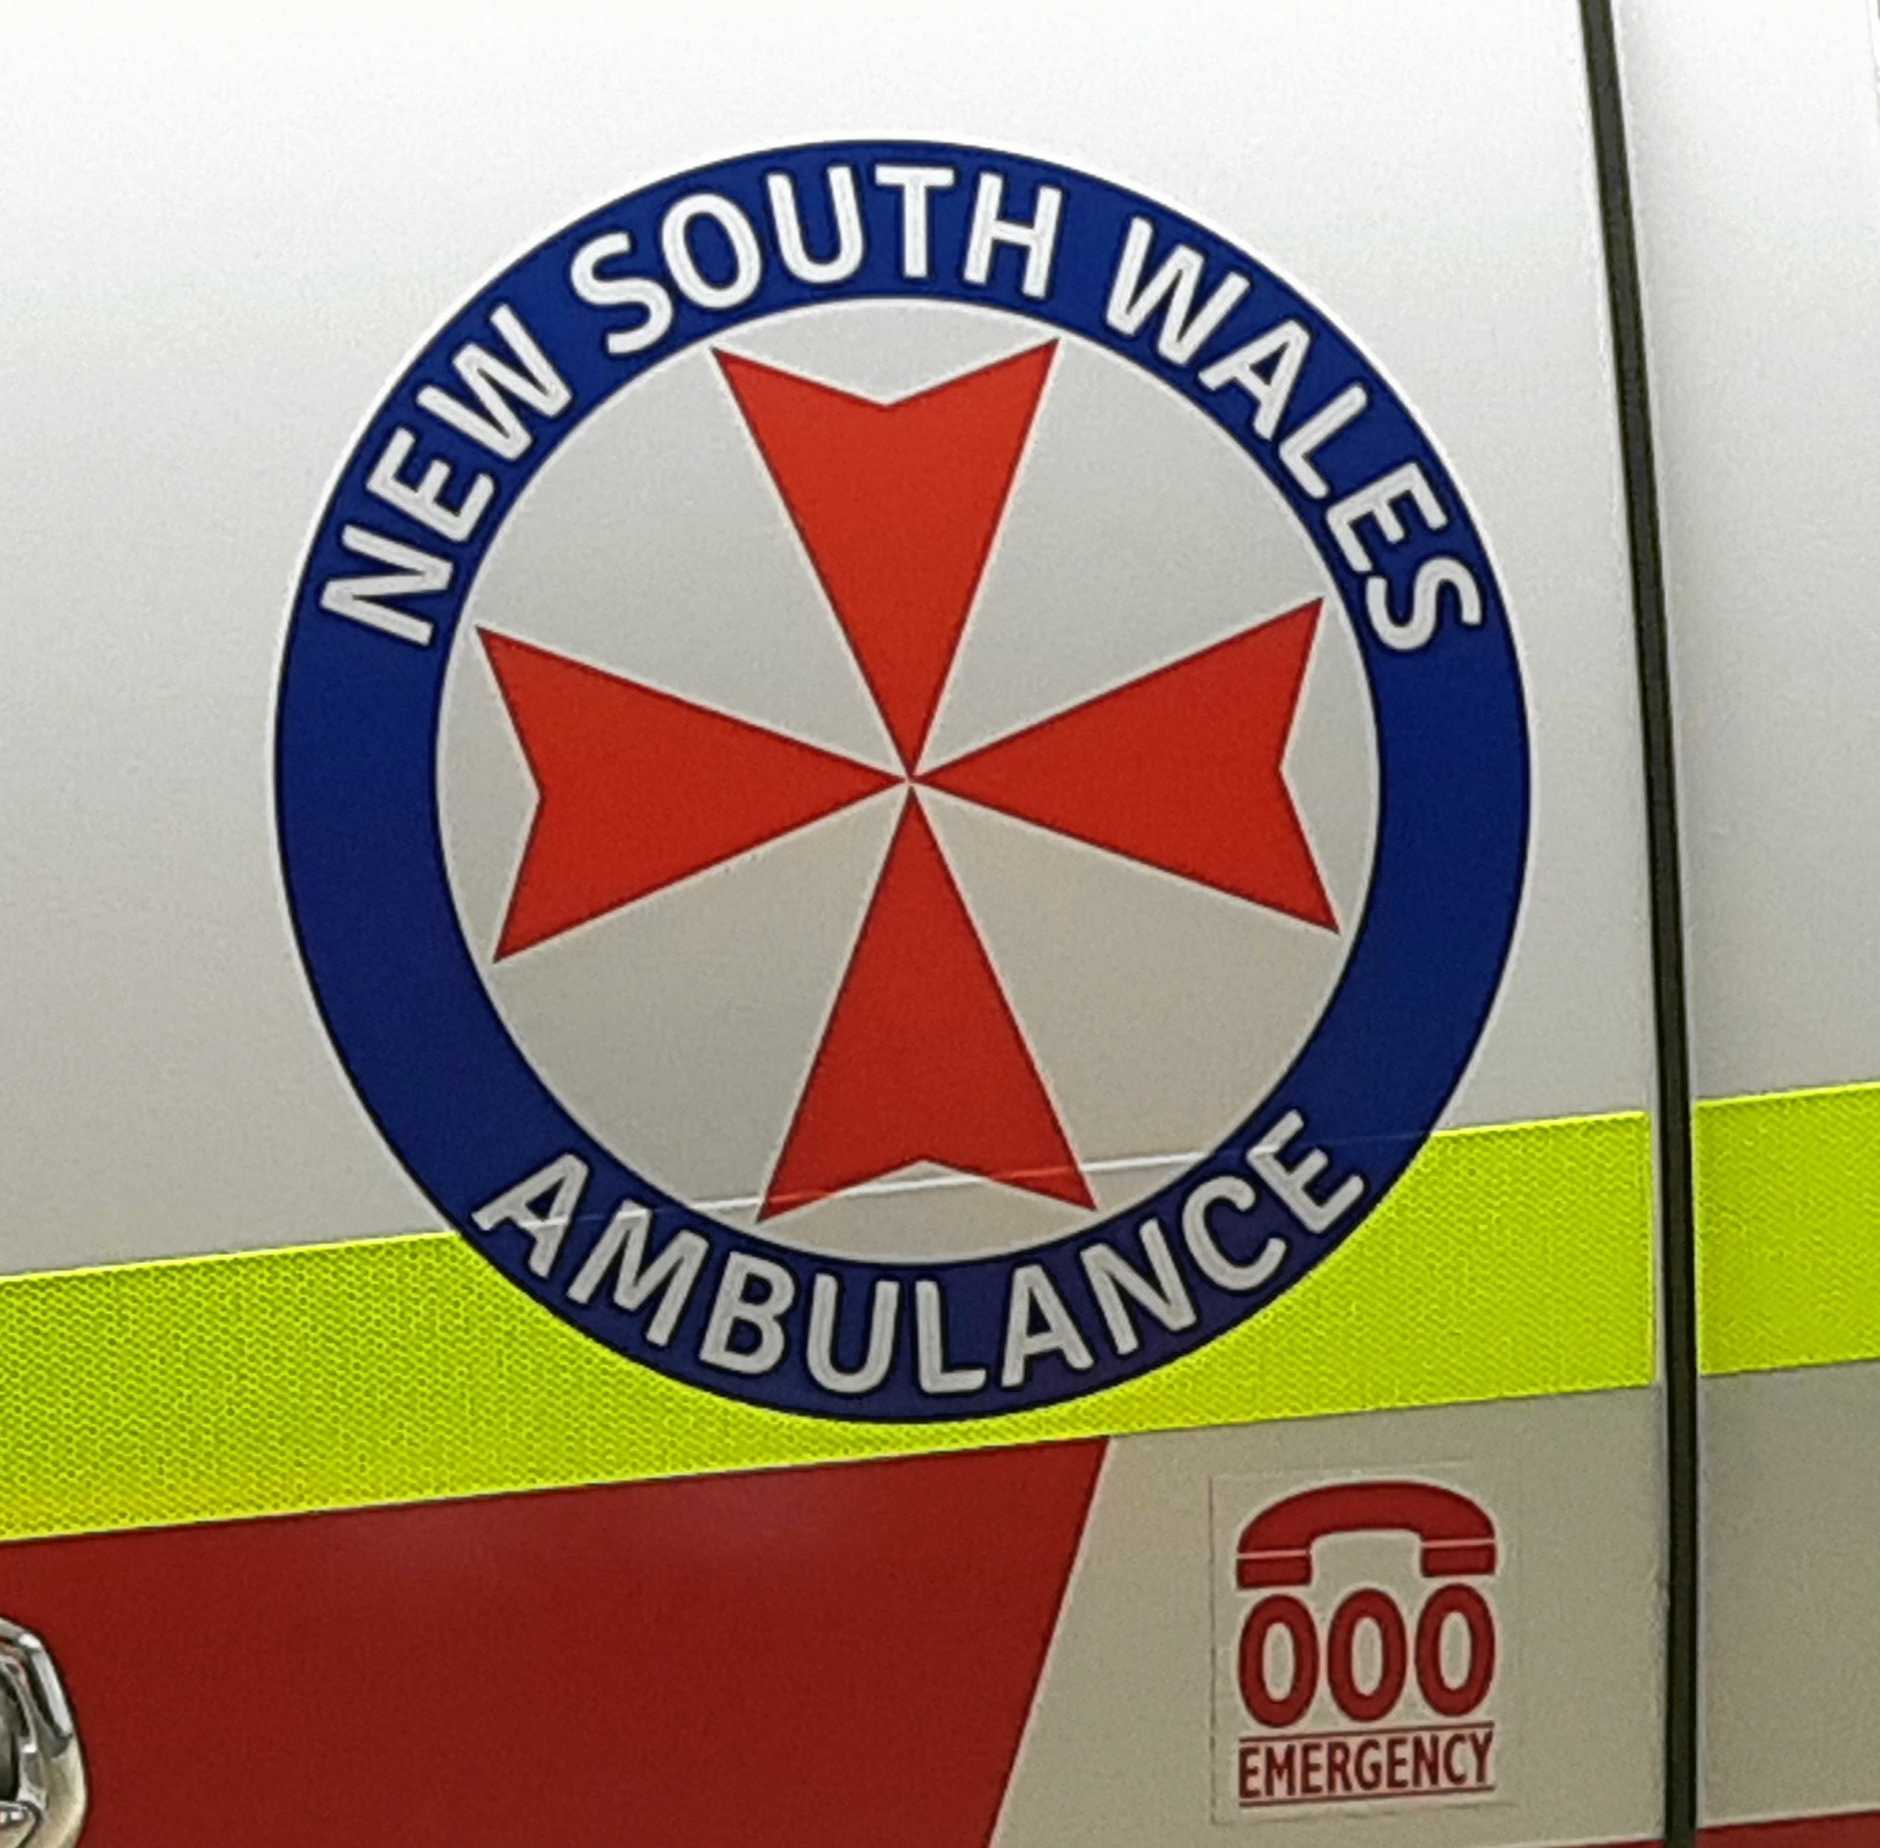 Ambulance crews are on their way to a vehicle crash on the Pacific Hwy near Woodburn.